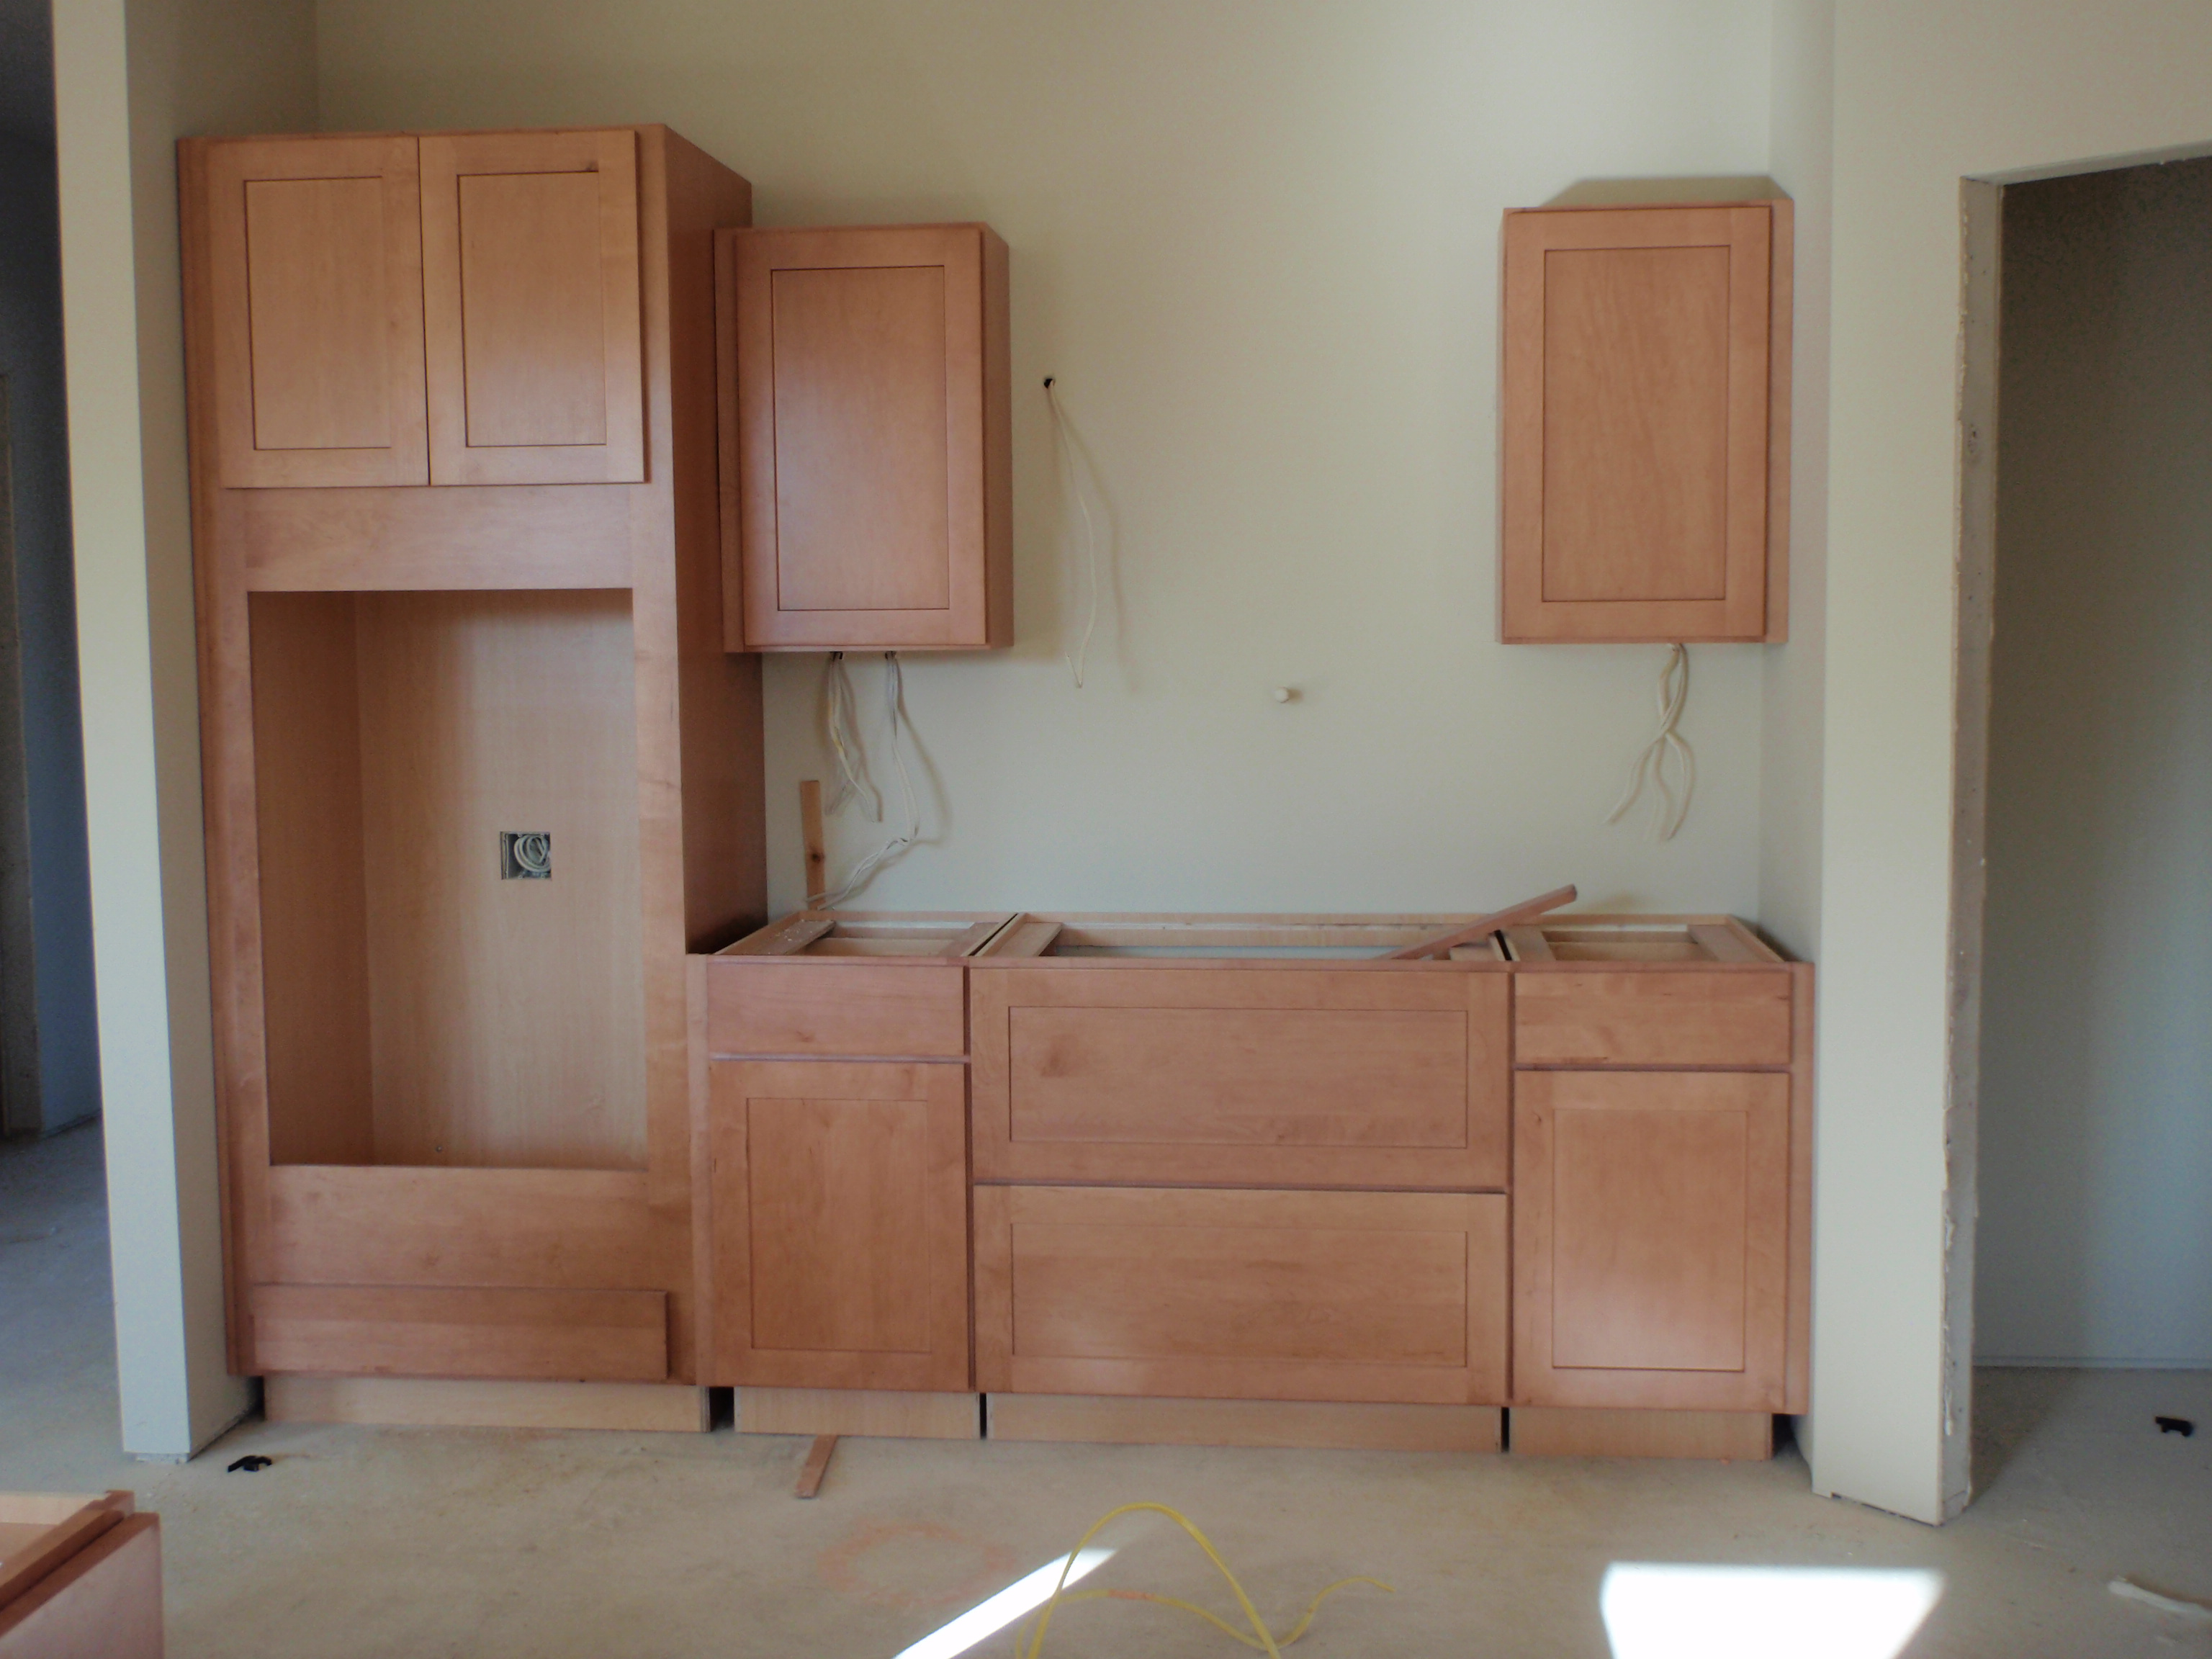 Kitchen Wall Oven Cabinets